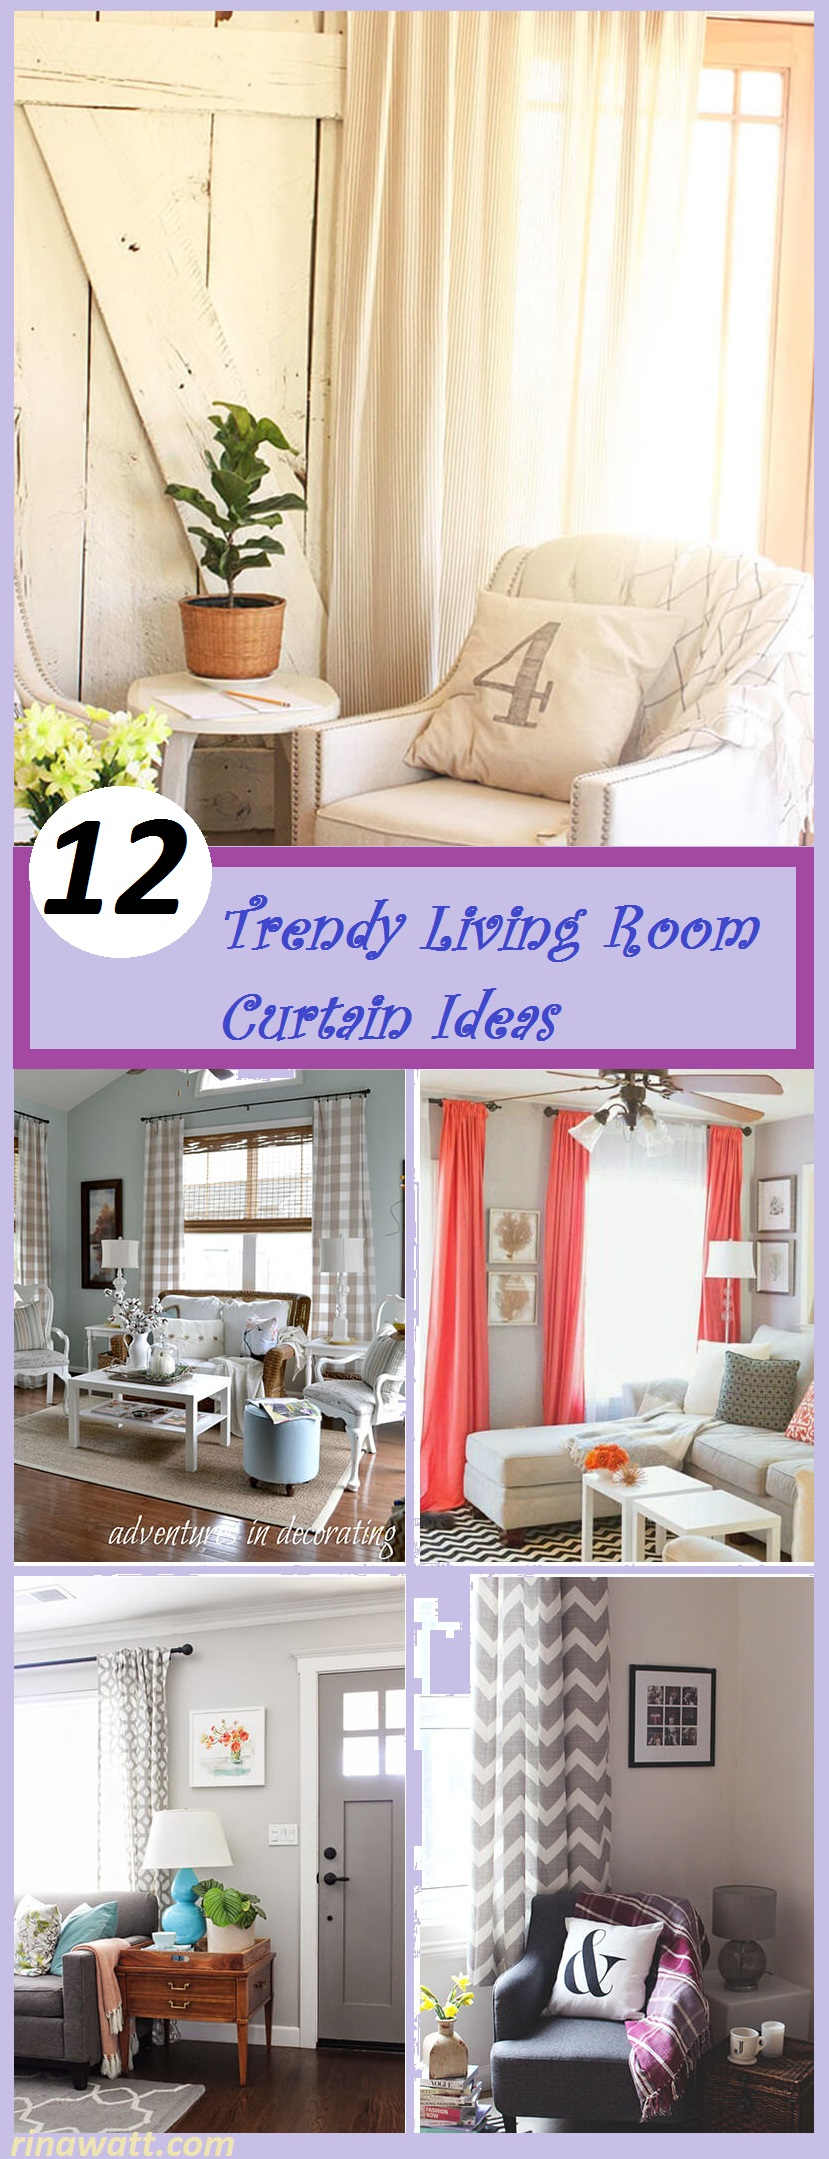 12 Living Room Curtain Ideas to Instantly Upgrade your Interior ...